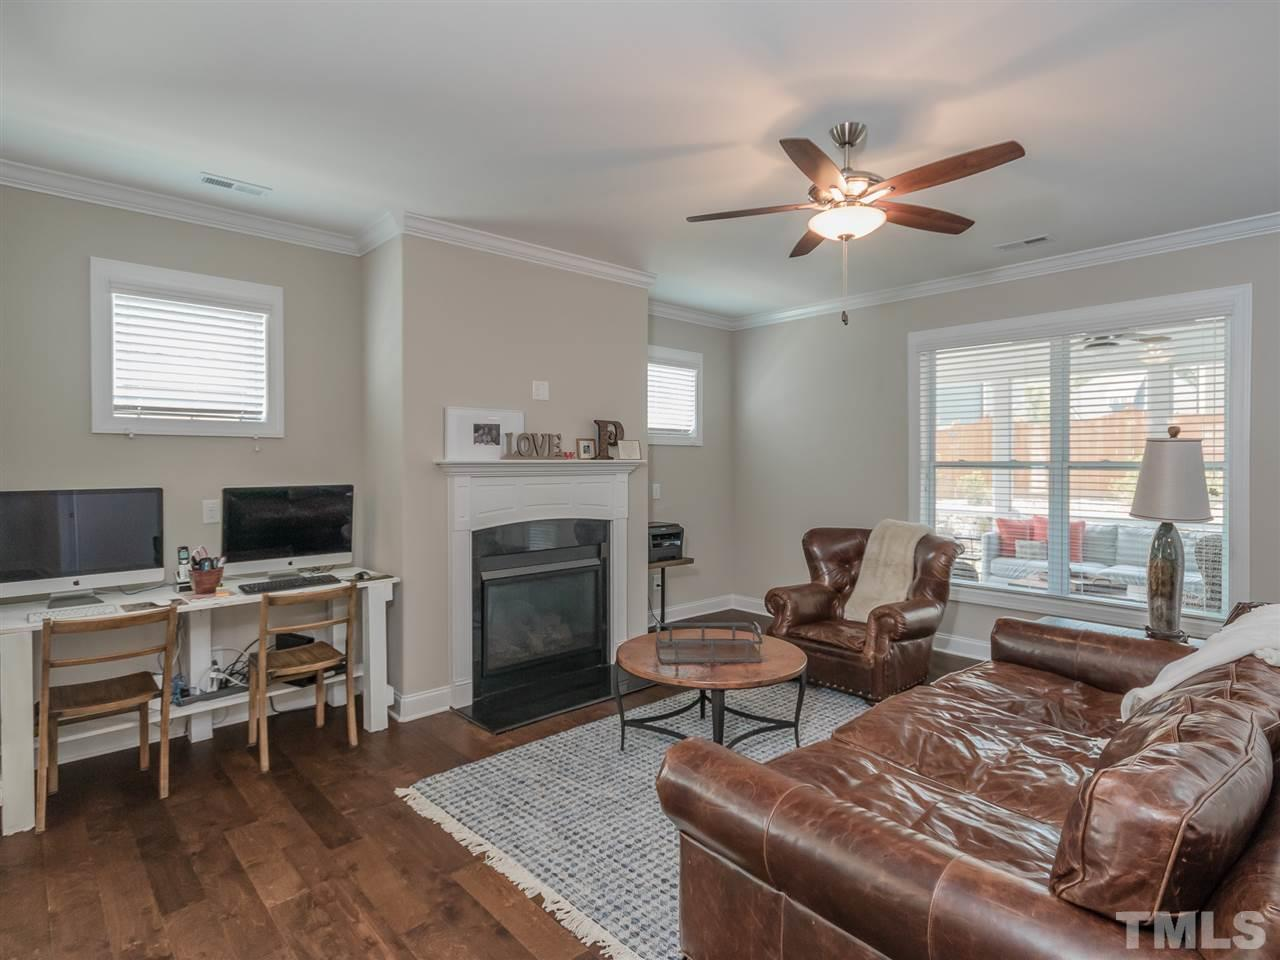 Family room with gas logs and crown molding. Notice the high windows for brings in natural light but does not interfere with furniture placement.